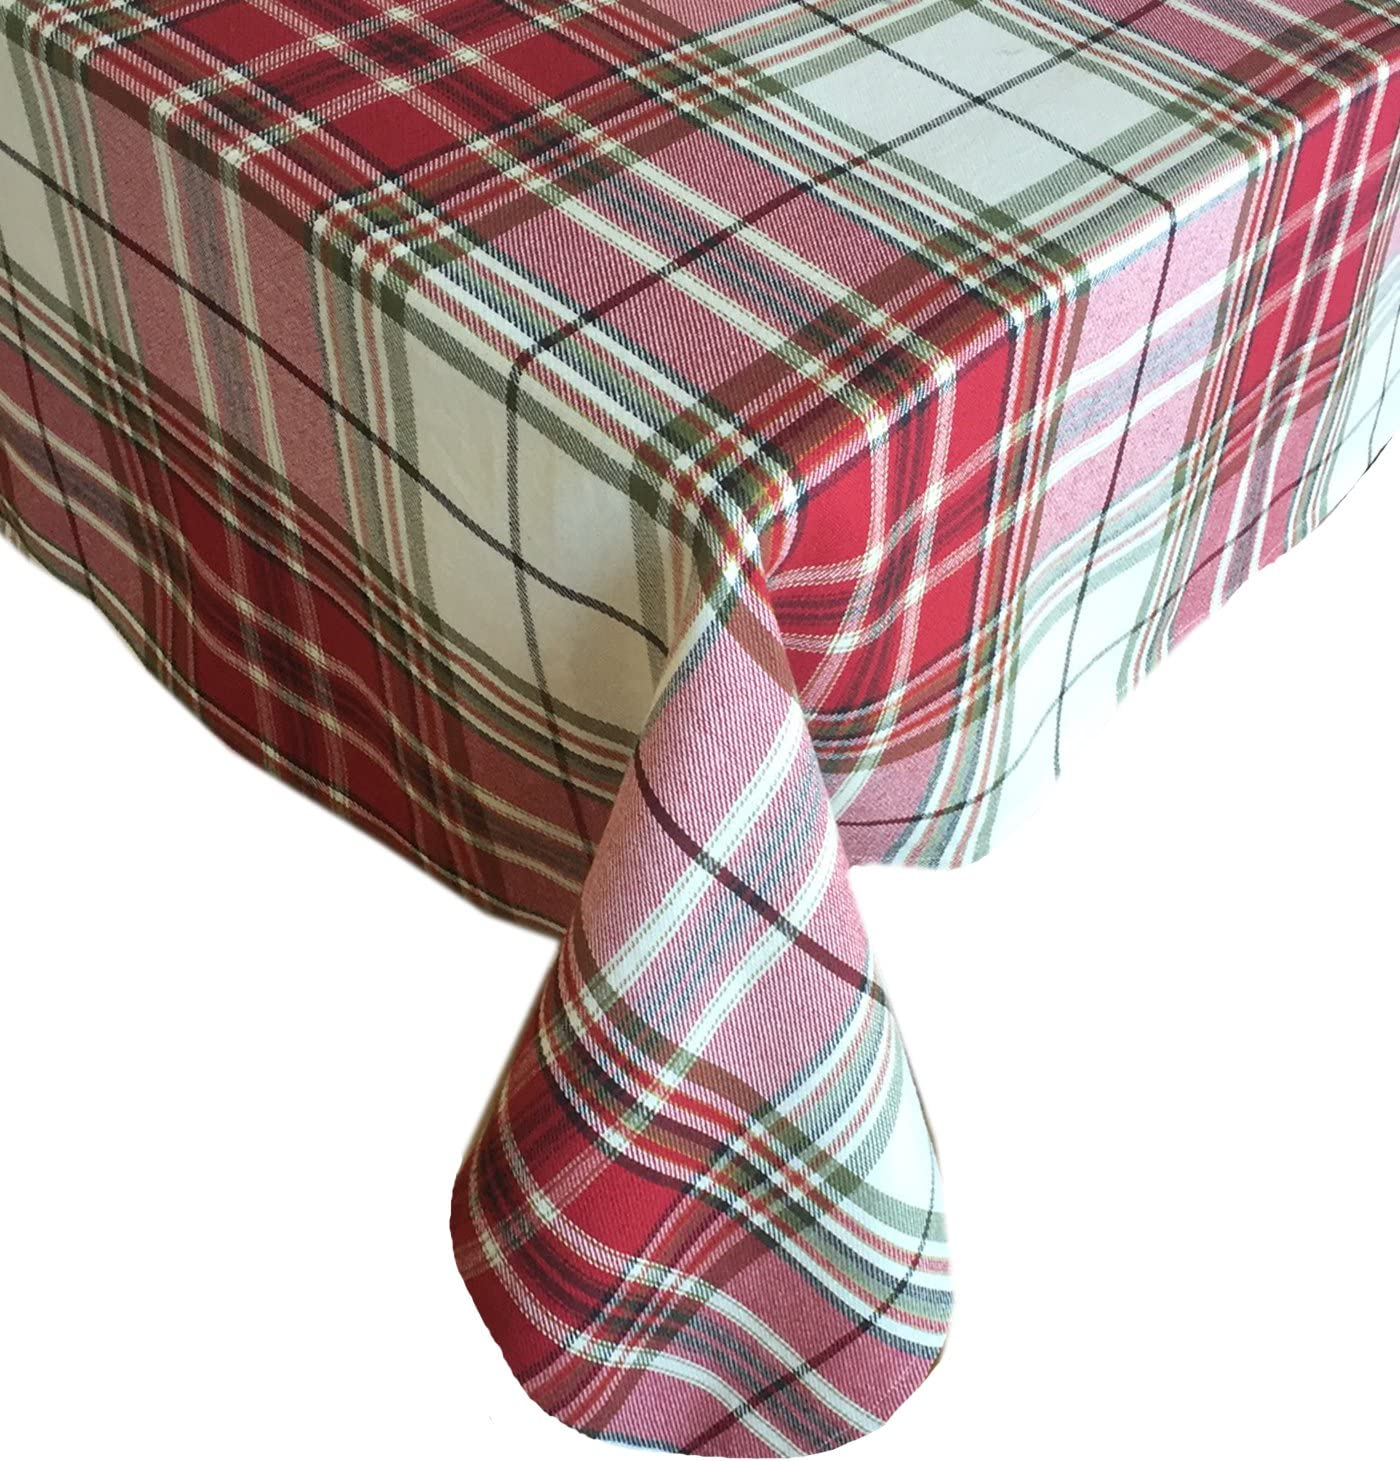 Sully Tartan Christmas Plaid Fabric Tablecloth 100 Woven Cotton Holiday Tablecloth 60 X 102 Oblong Rectangle Kitchen Dining